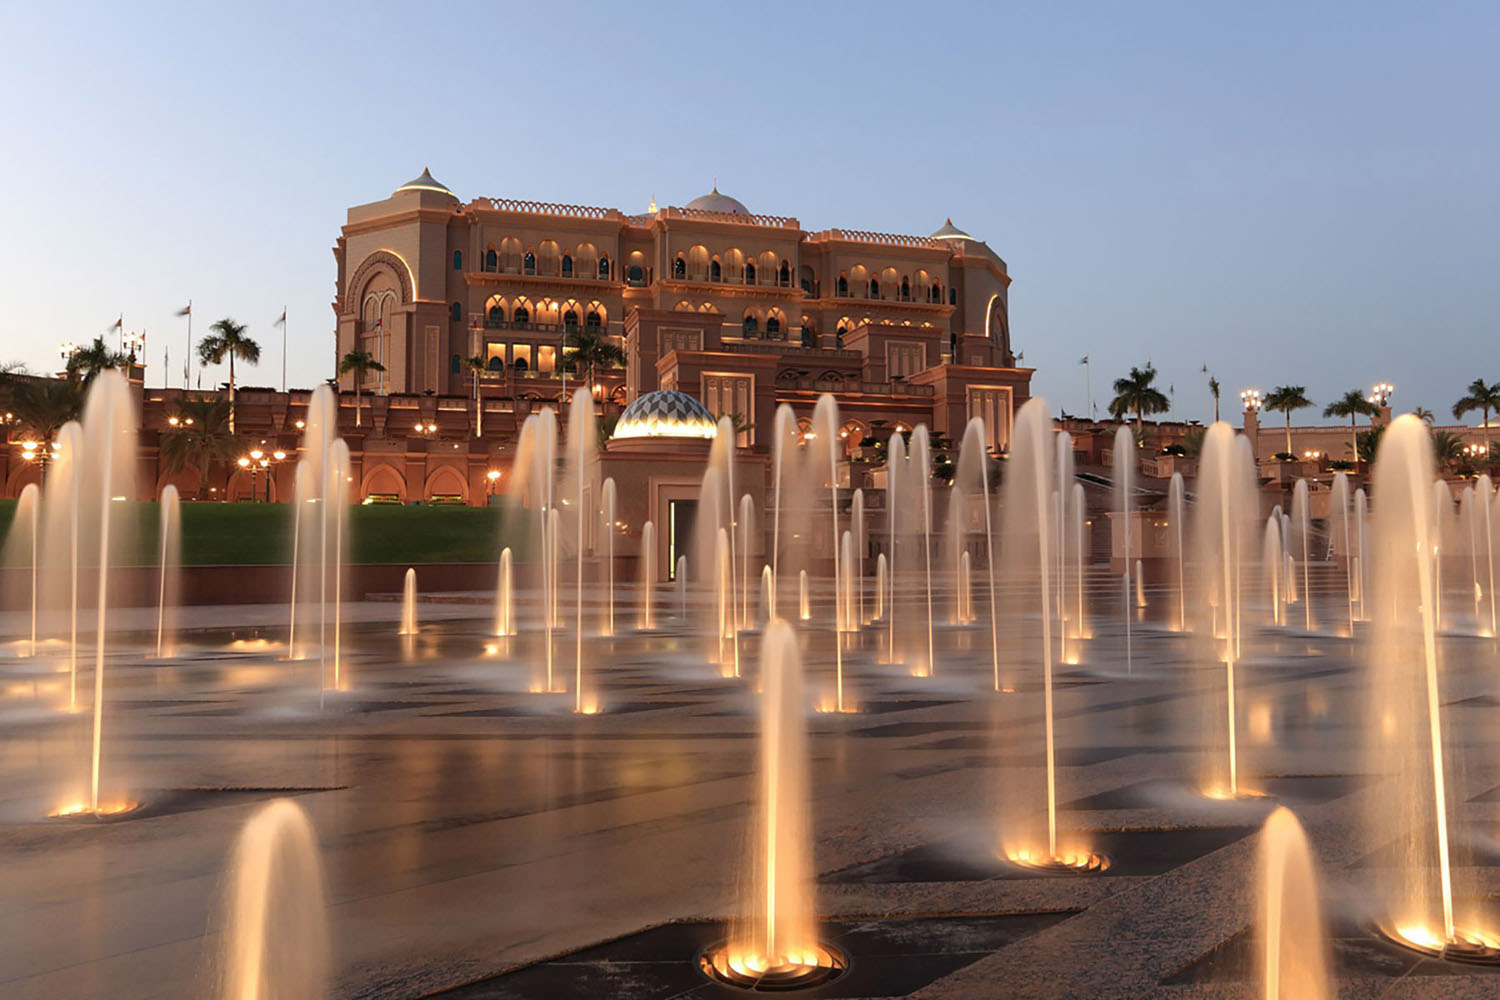 The exterior of The Emirates Palace in Abu Dhabi